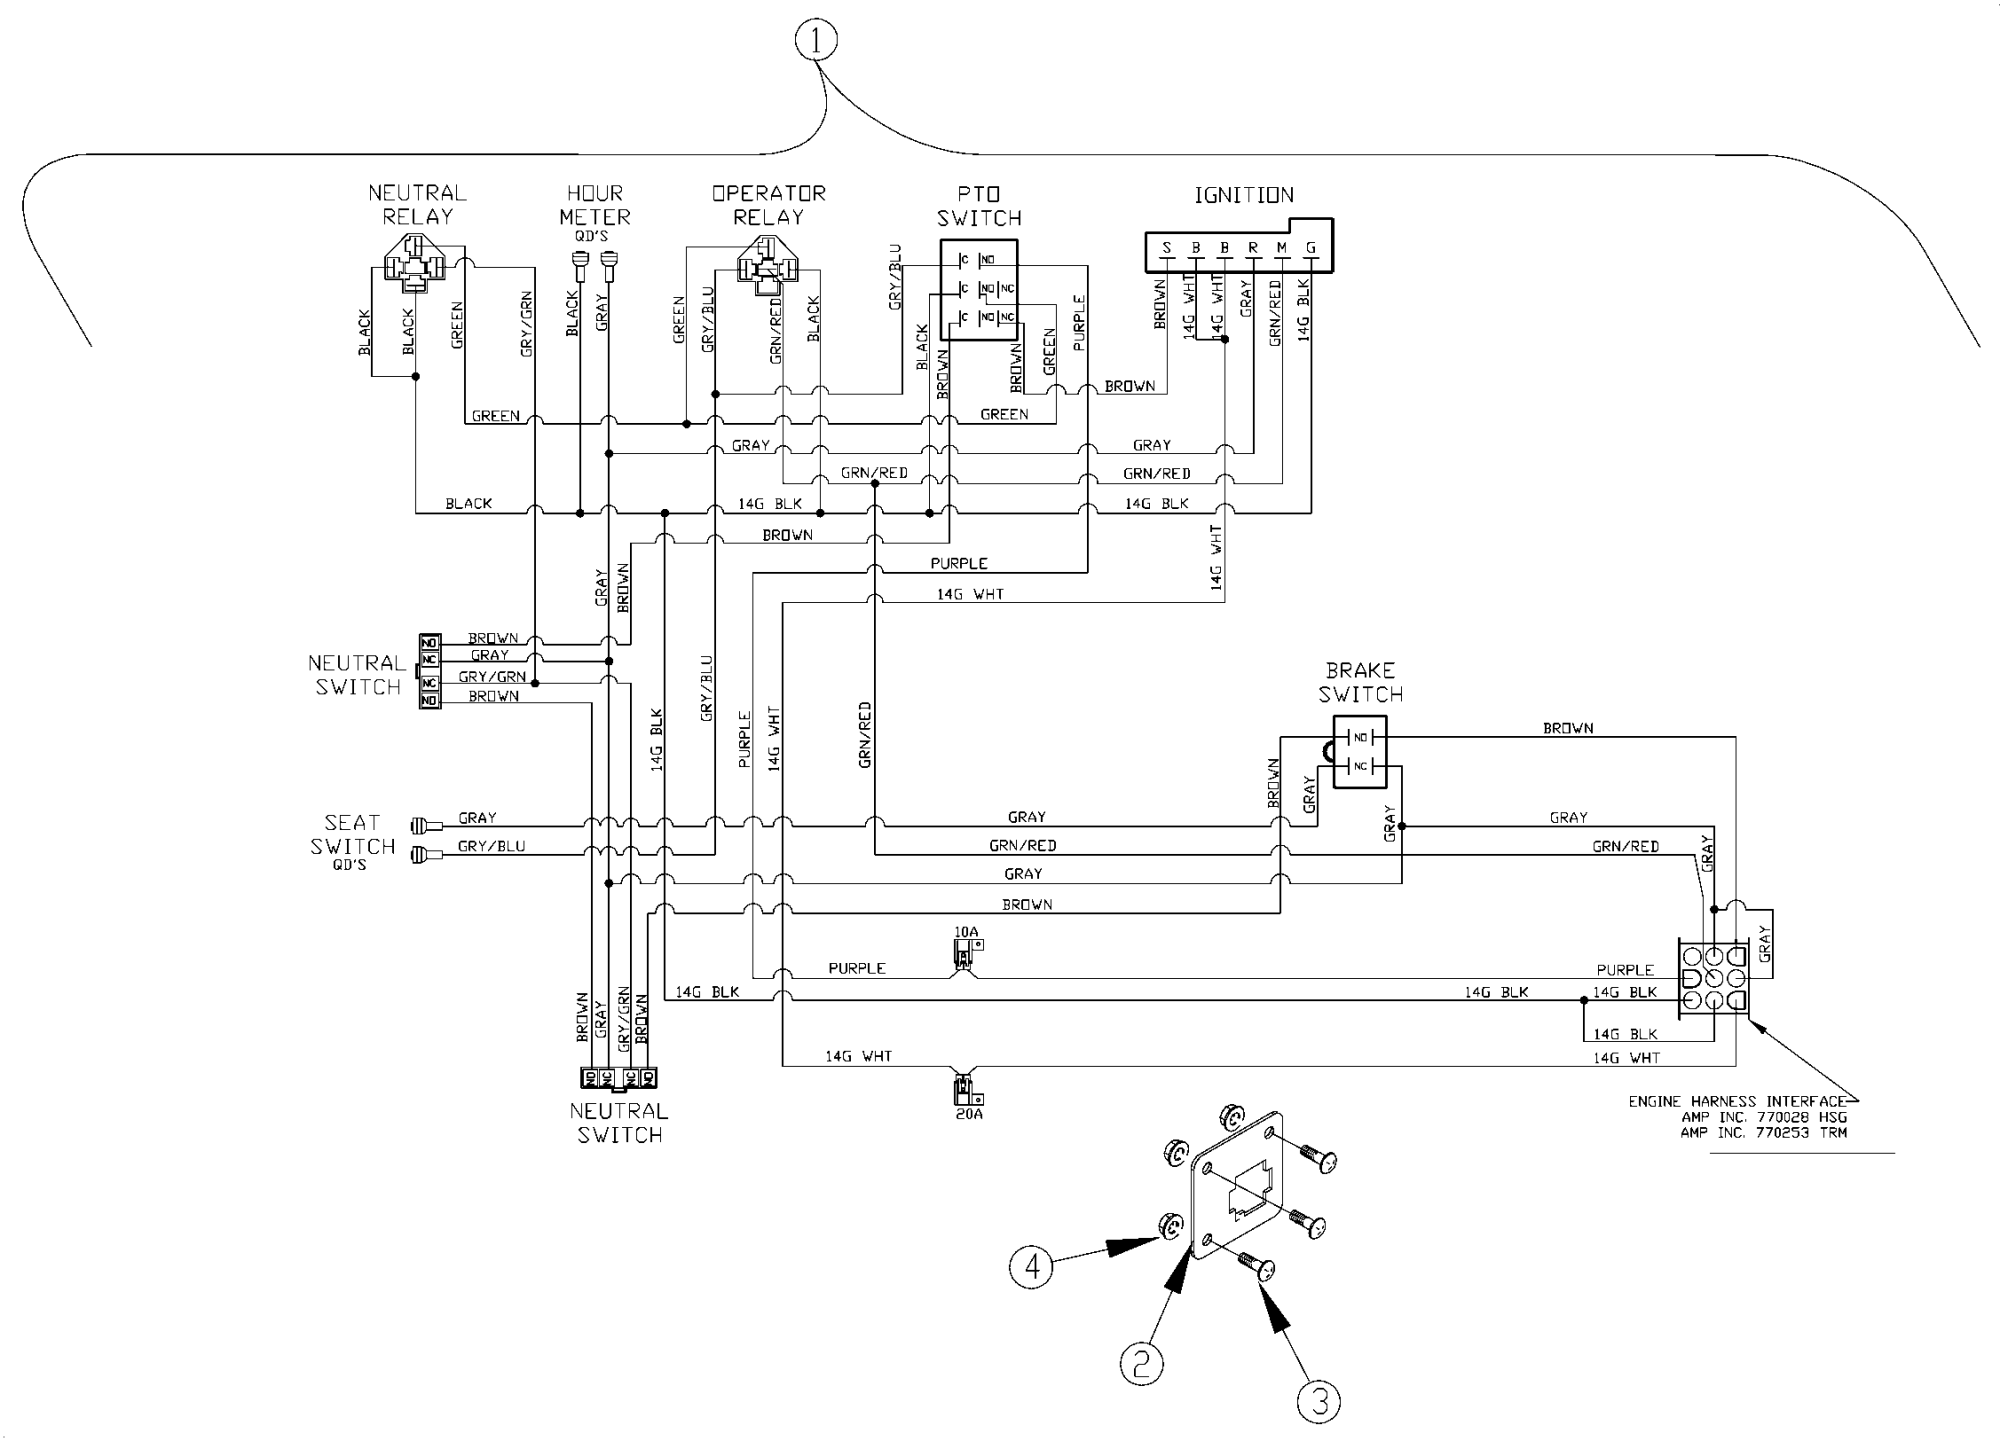 hight resolution of land pride wiring diagram wiring diagram schematics wiring schematics land pride wiring diagram